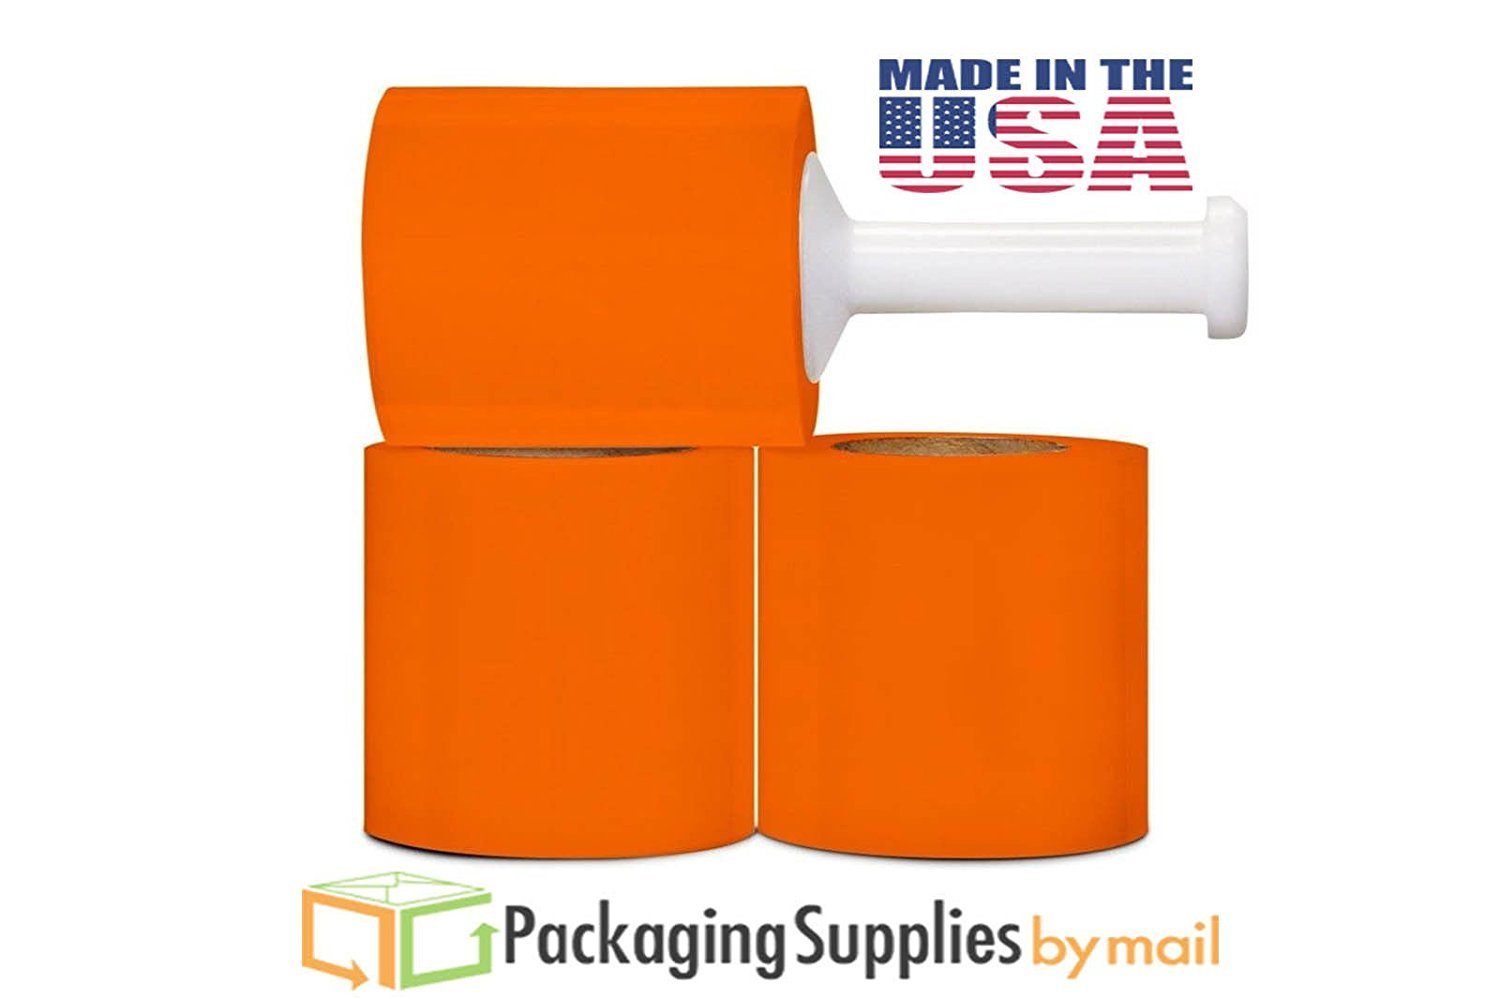 5in x 1000ft x 80gs Narrow Banding Orange Stretch Film Hand Wrap 60 Rolls + 1 Plastic Handle per Case